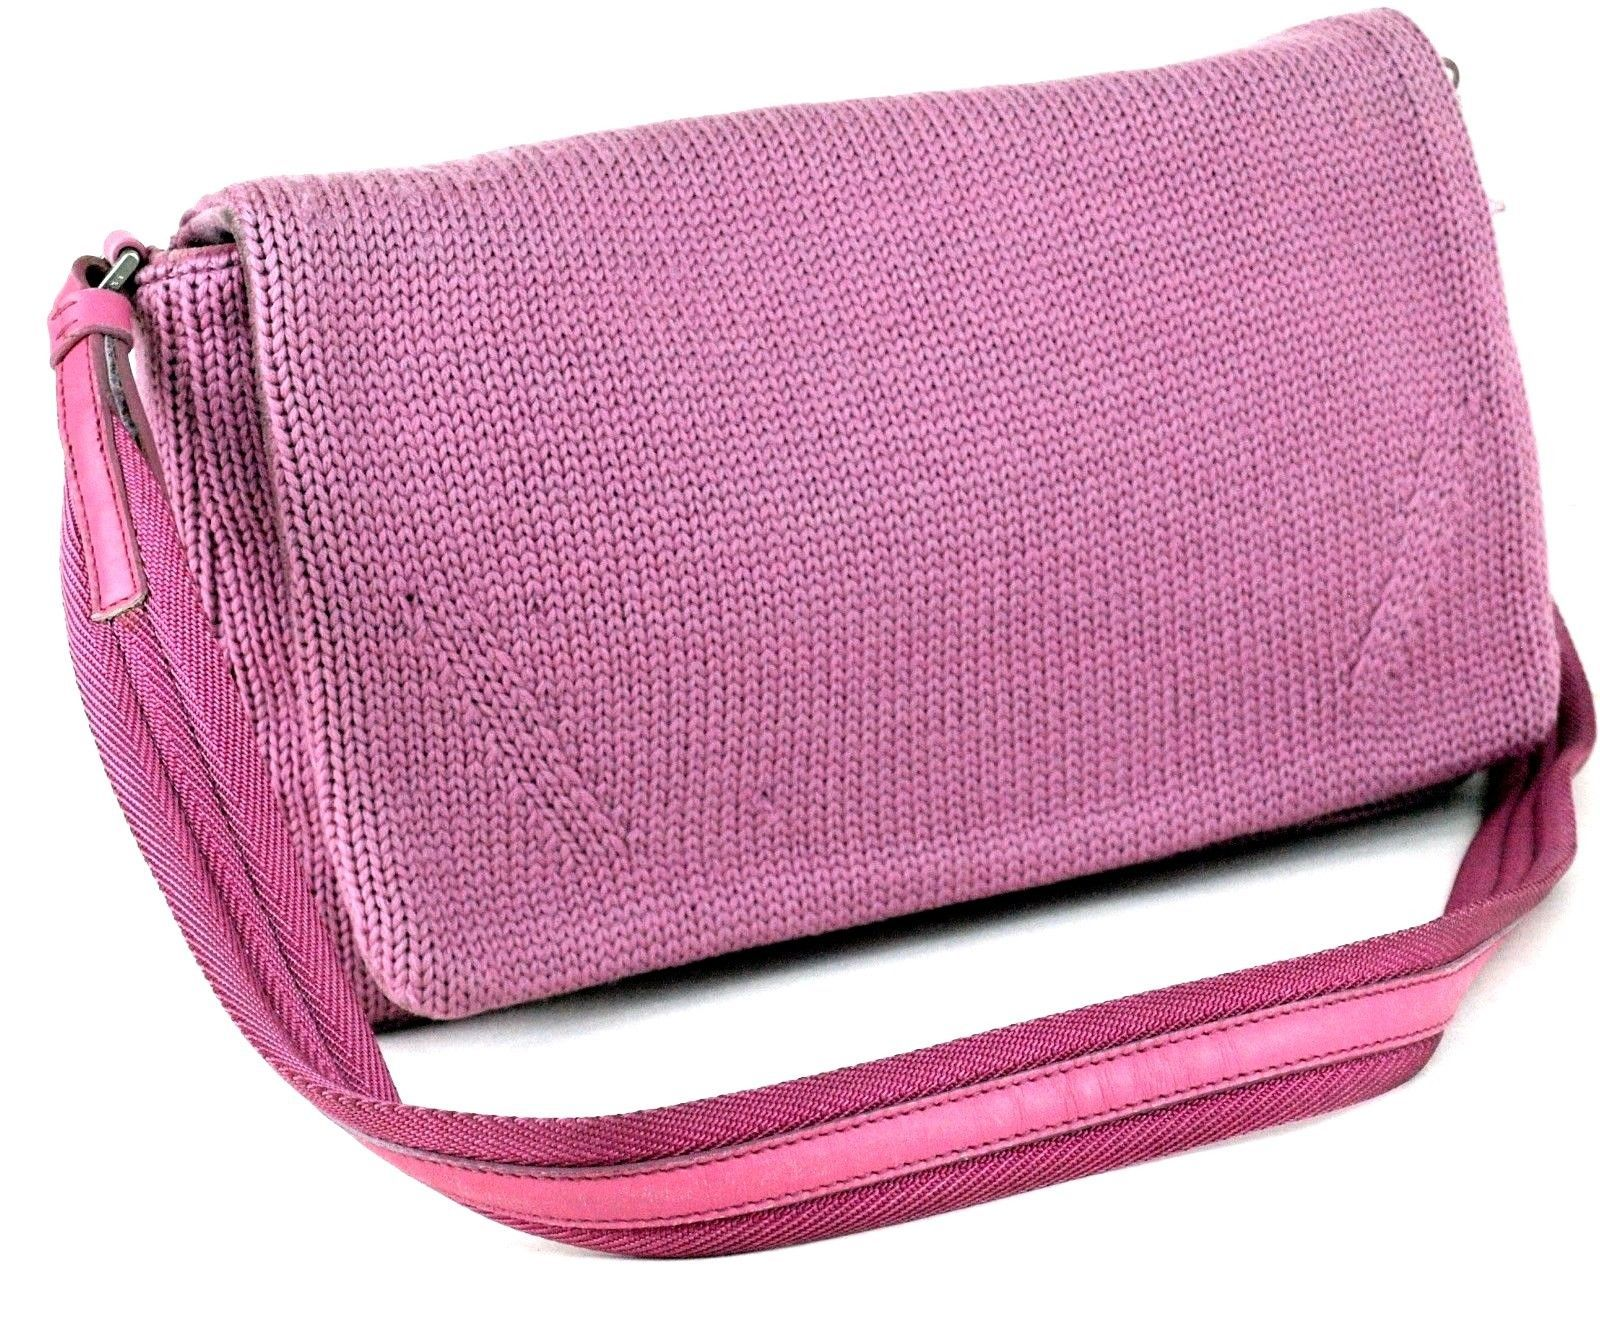 5e0db8375c21 S l1600. S l1600. Authentic Prada Milano Hot Pink Wool   Suede Leather  Shoulder Bag Purse Italy